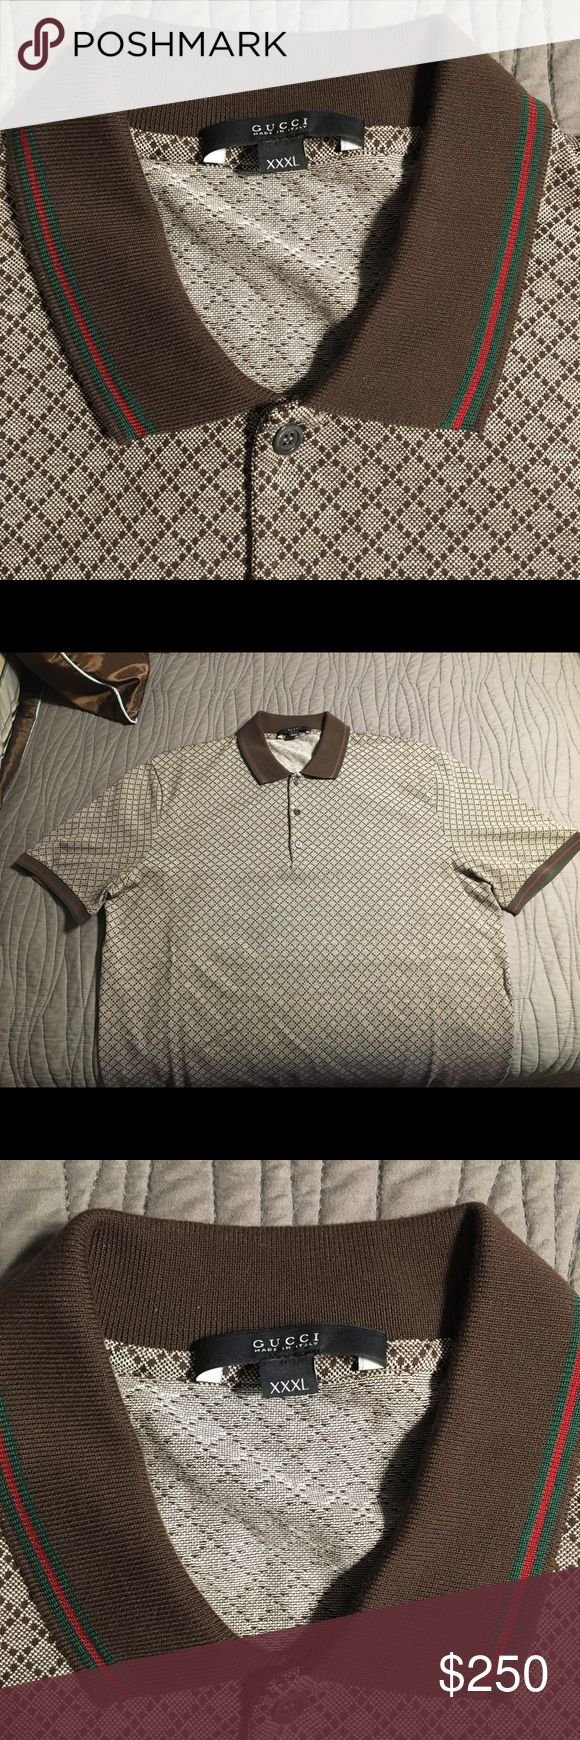 🆕 Gucci Diamante Polo XXXL Gucci Diamante polo shirt These run small so it fits like a XXL I took the tags off but never wore the shirt Bought from the west palm beach gardens gucci store Gucci Shirts Polos